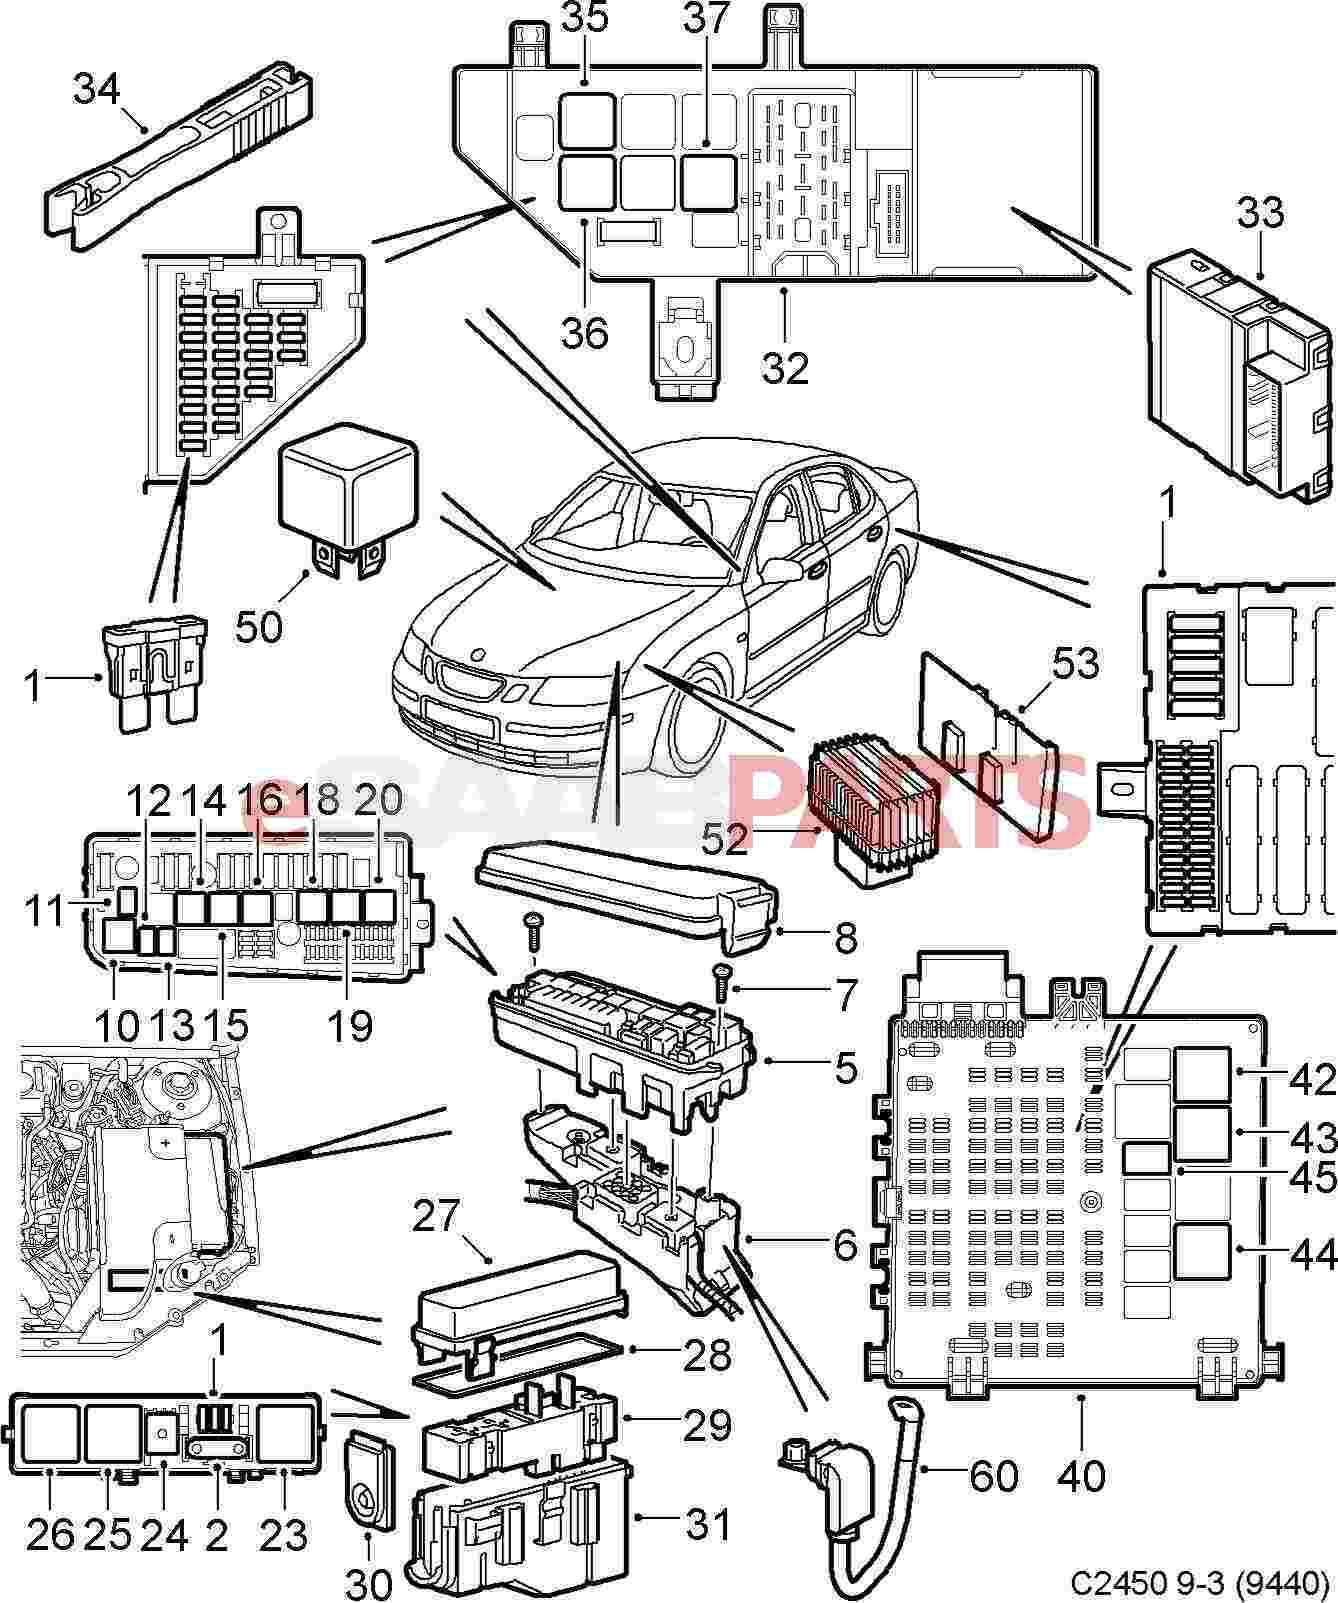 2009 Saab 9 3 Fuse Diagram Wiring Posts 2005 Box Esaabparts Com 9440 U003e Electrical Parts Relays Fuses 2004